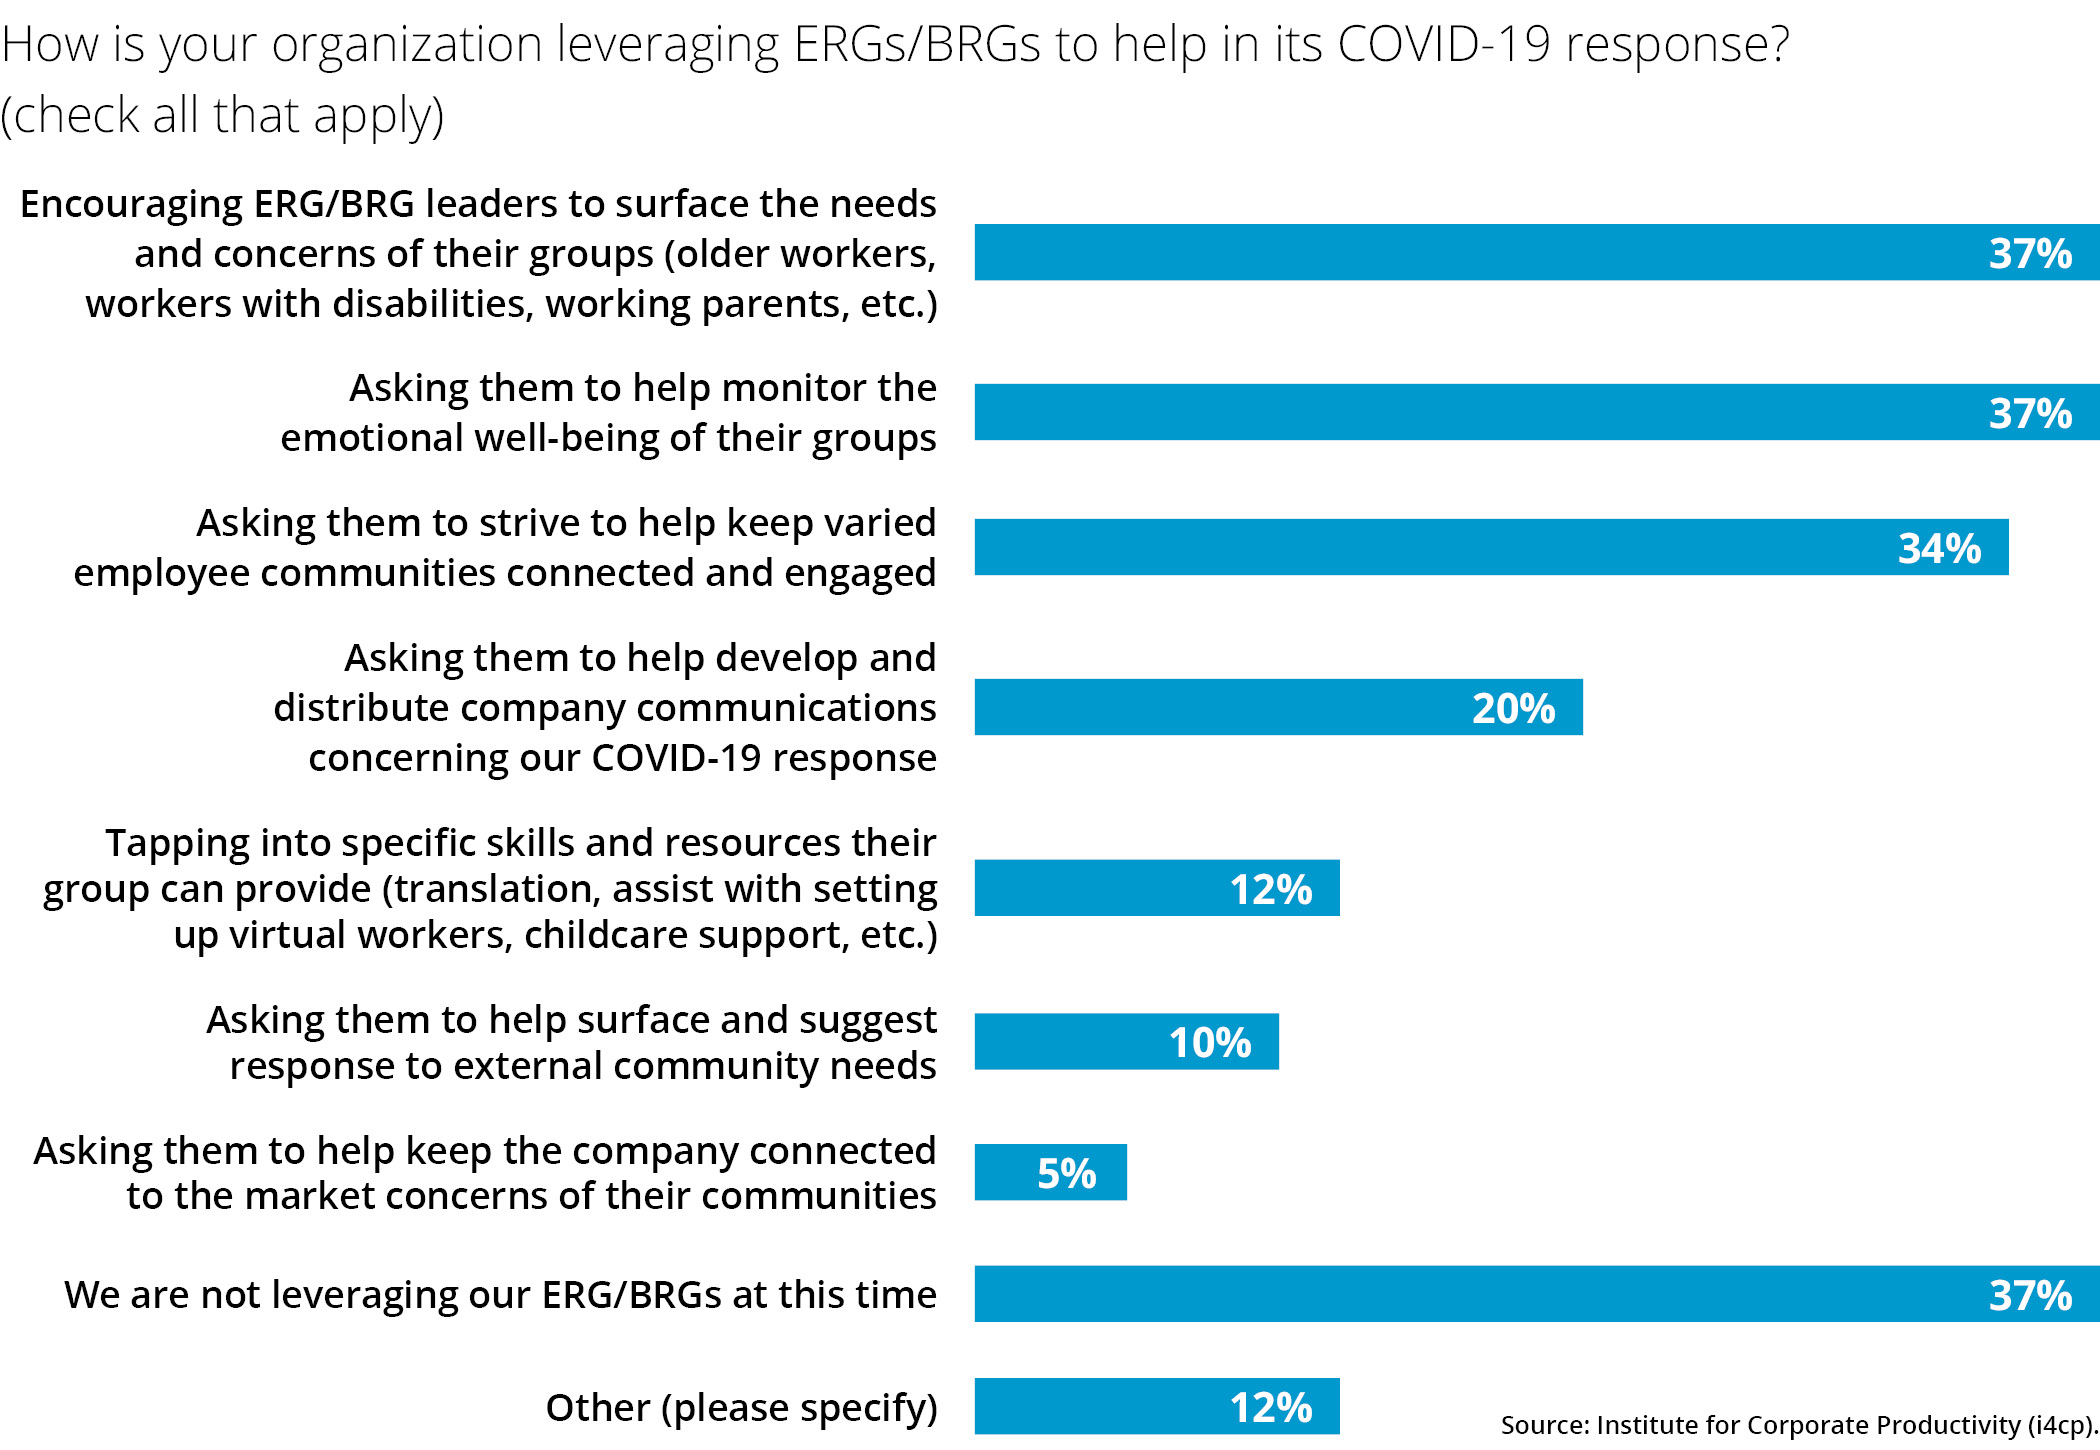 Leveraging ERGsBRGs during COVID-19